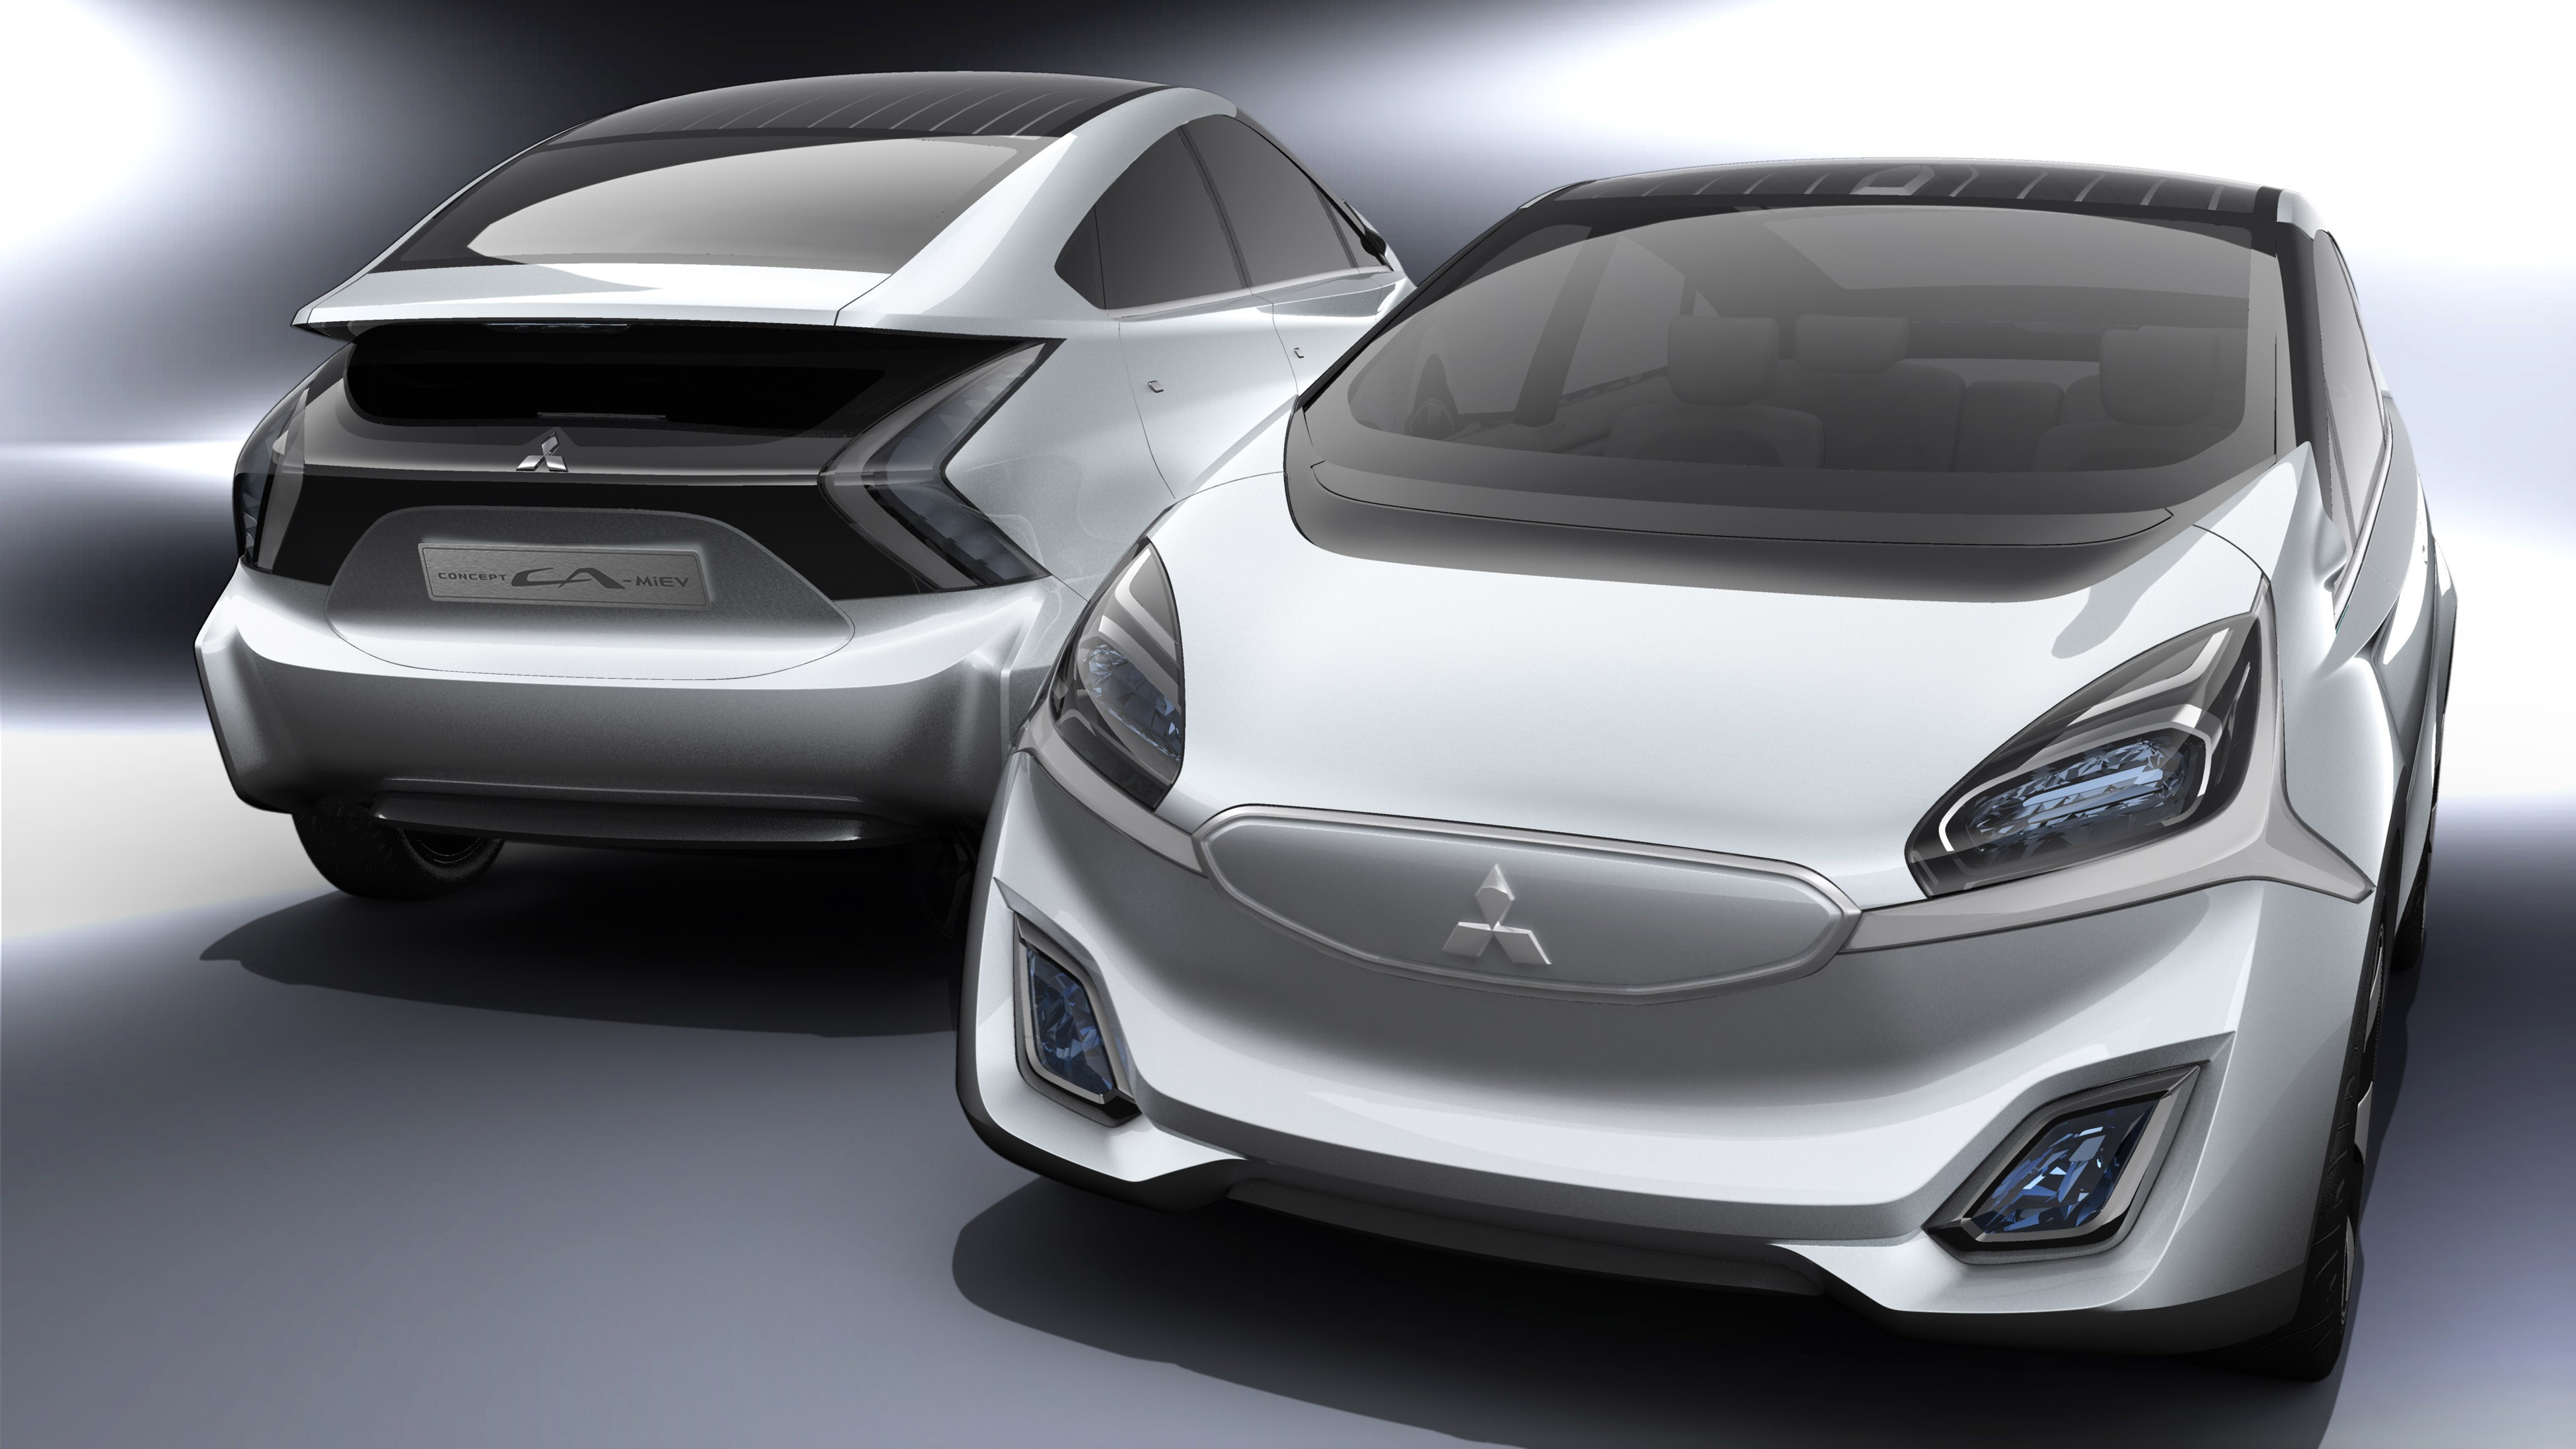 Wallpaper Mitsubishi CA-MiEV, concept, hybrid, ecosafe, electric cars, city cars, review, test ...